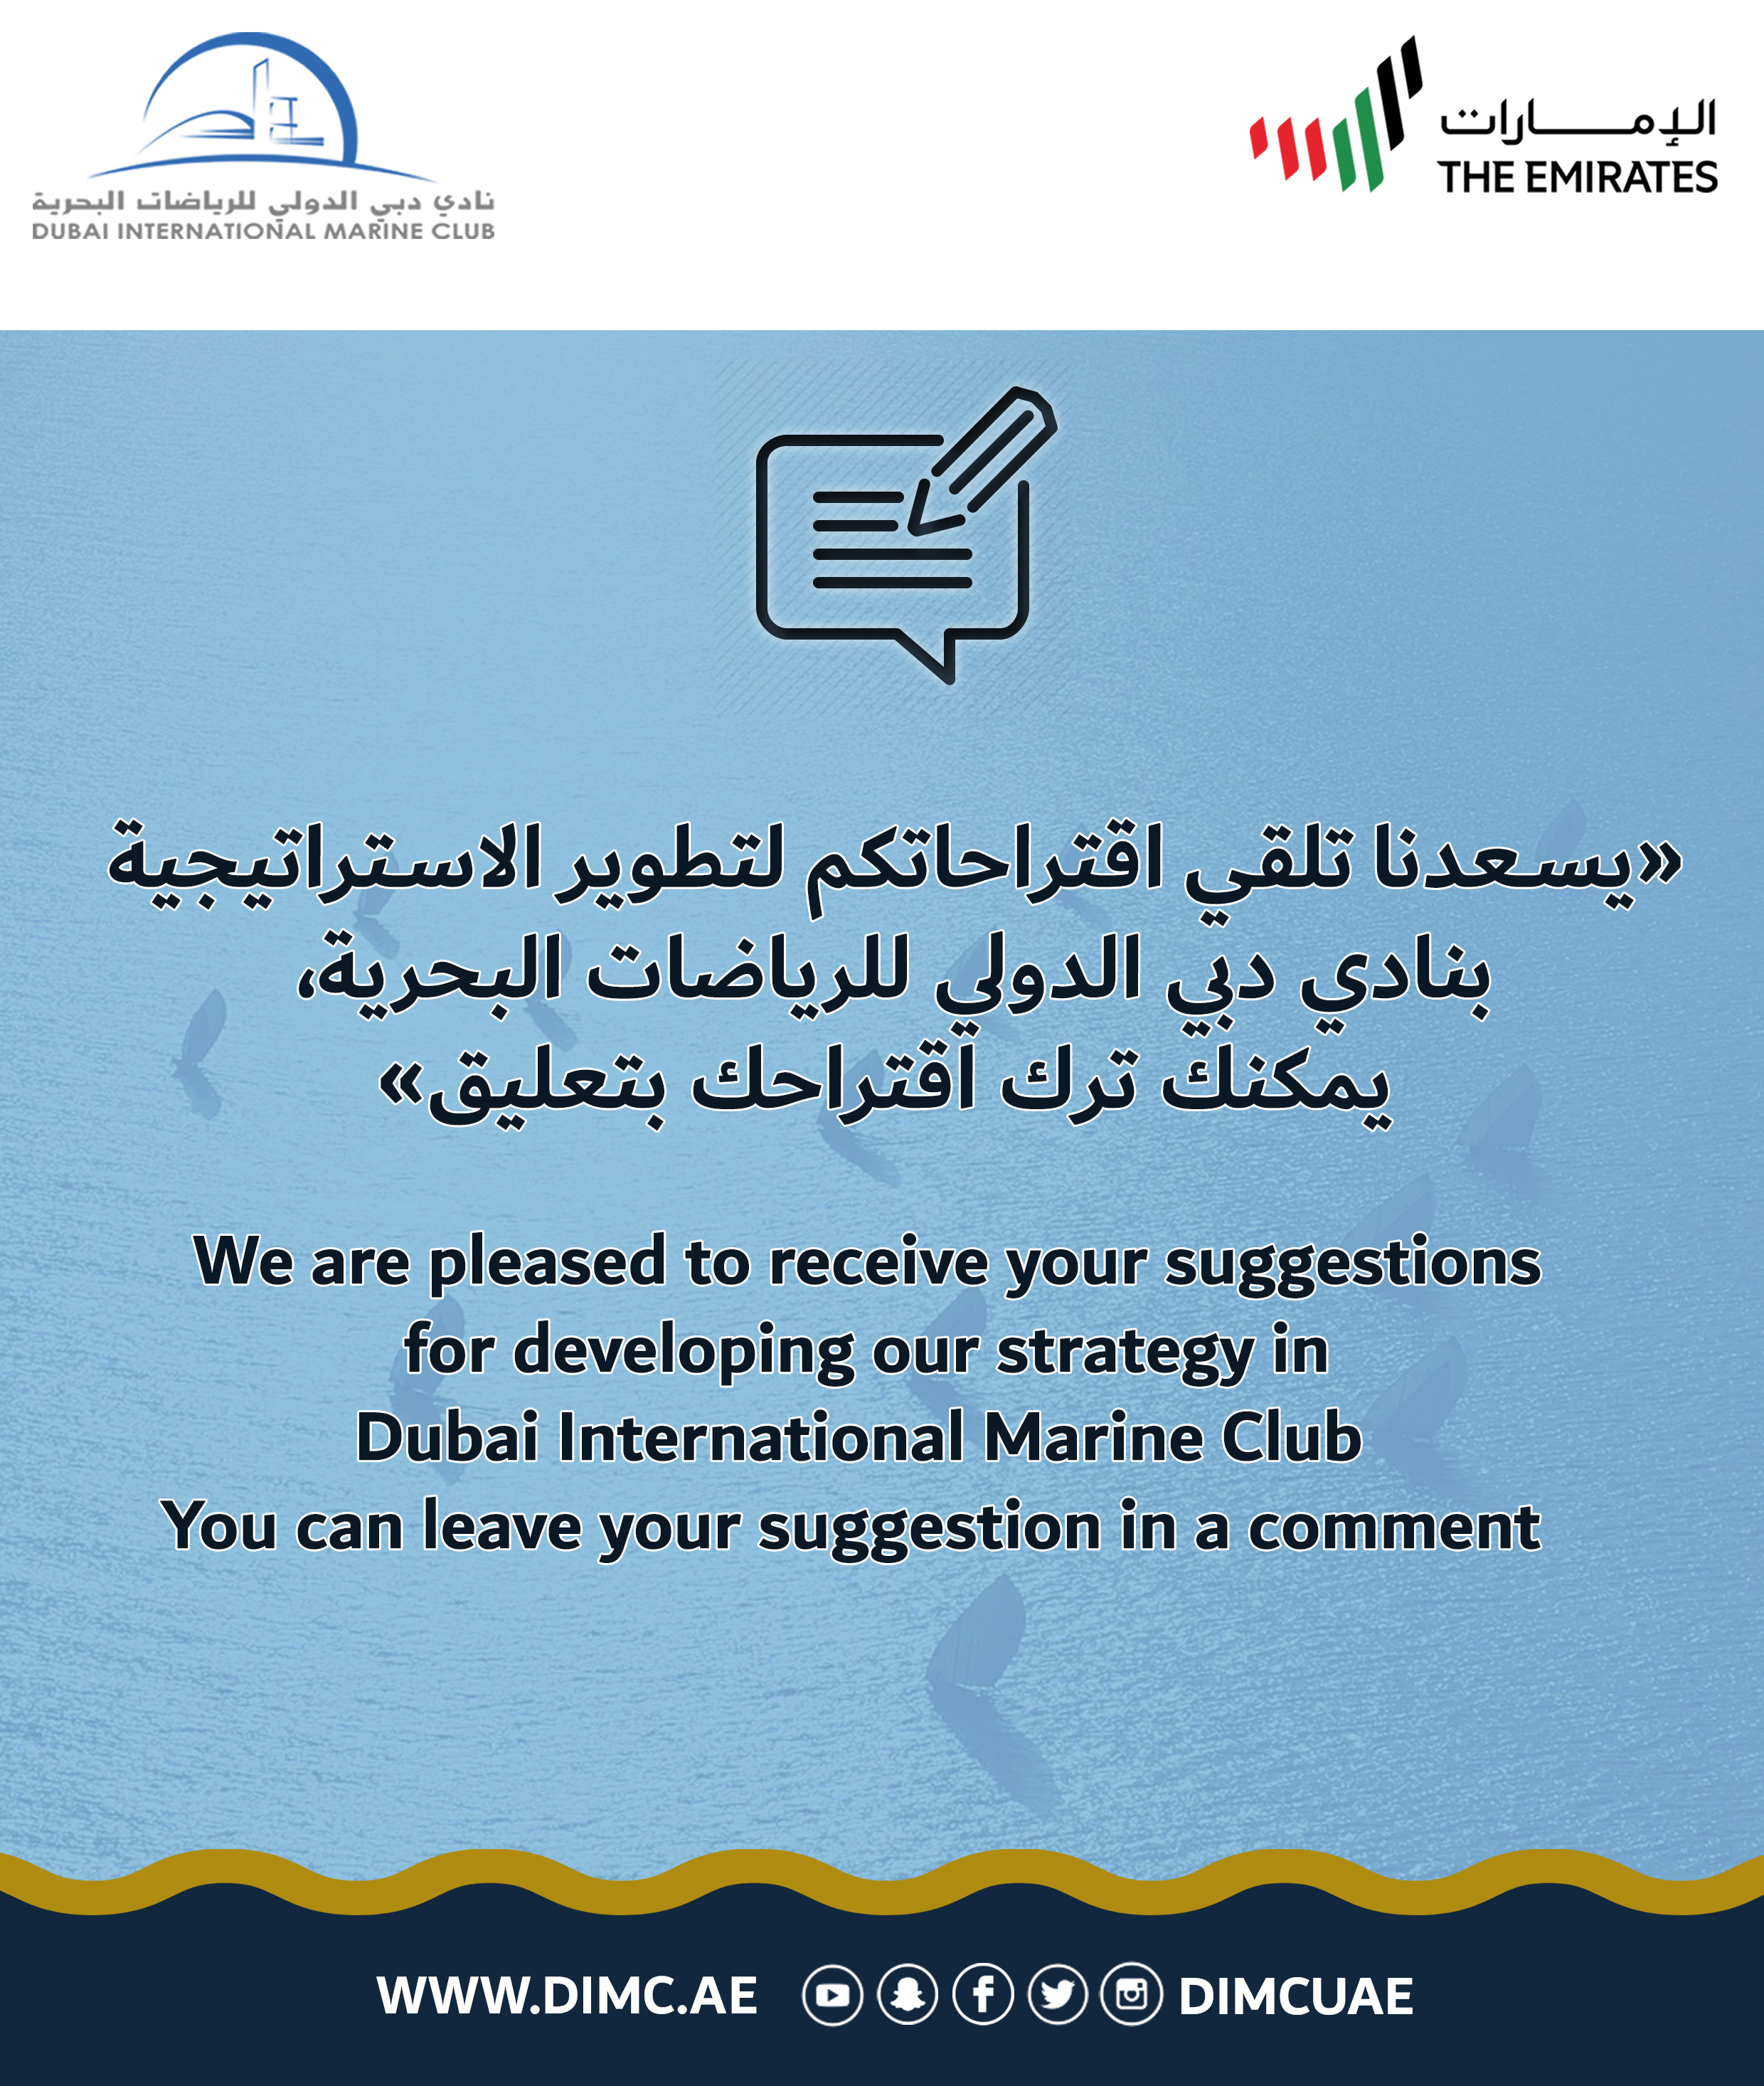 We are pleased to receive your suggestions for developing our strategy in Dubai International Marine Club You can email your suggestion : info@dimc.ae